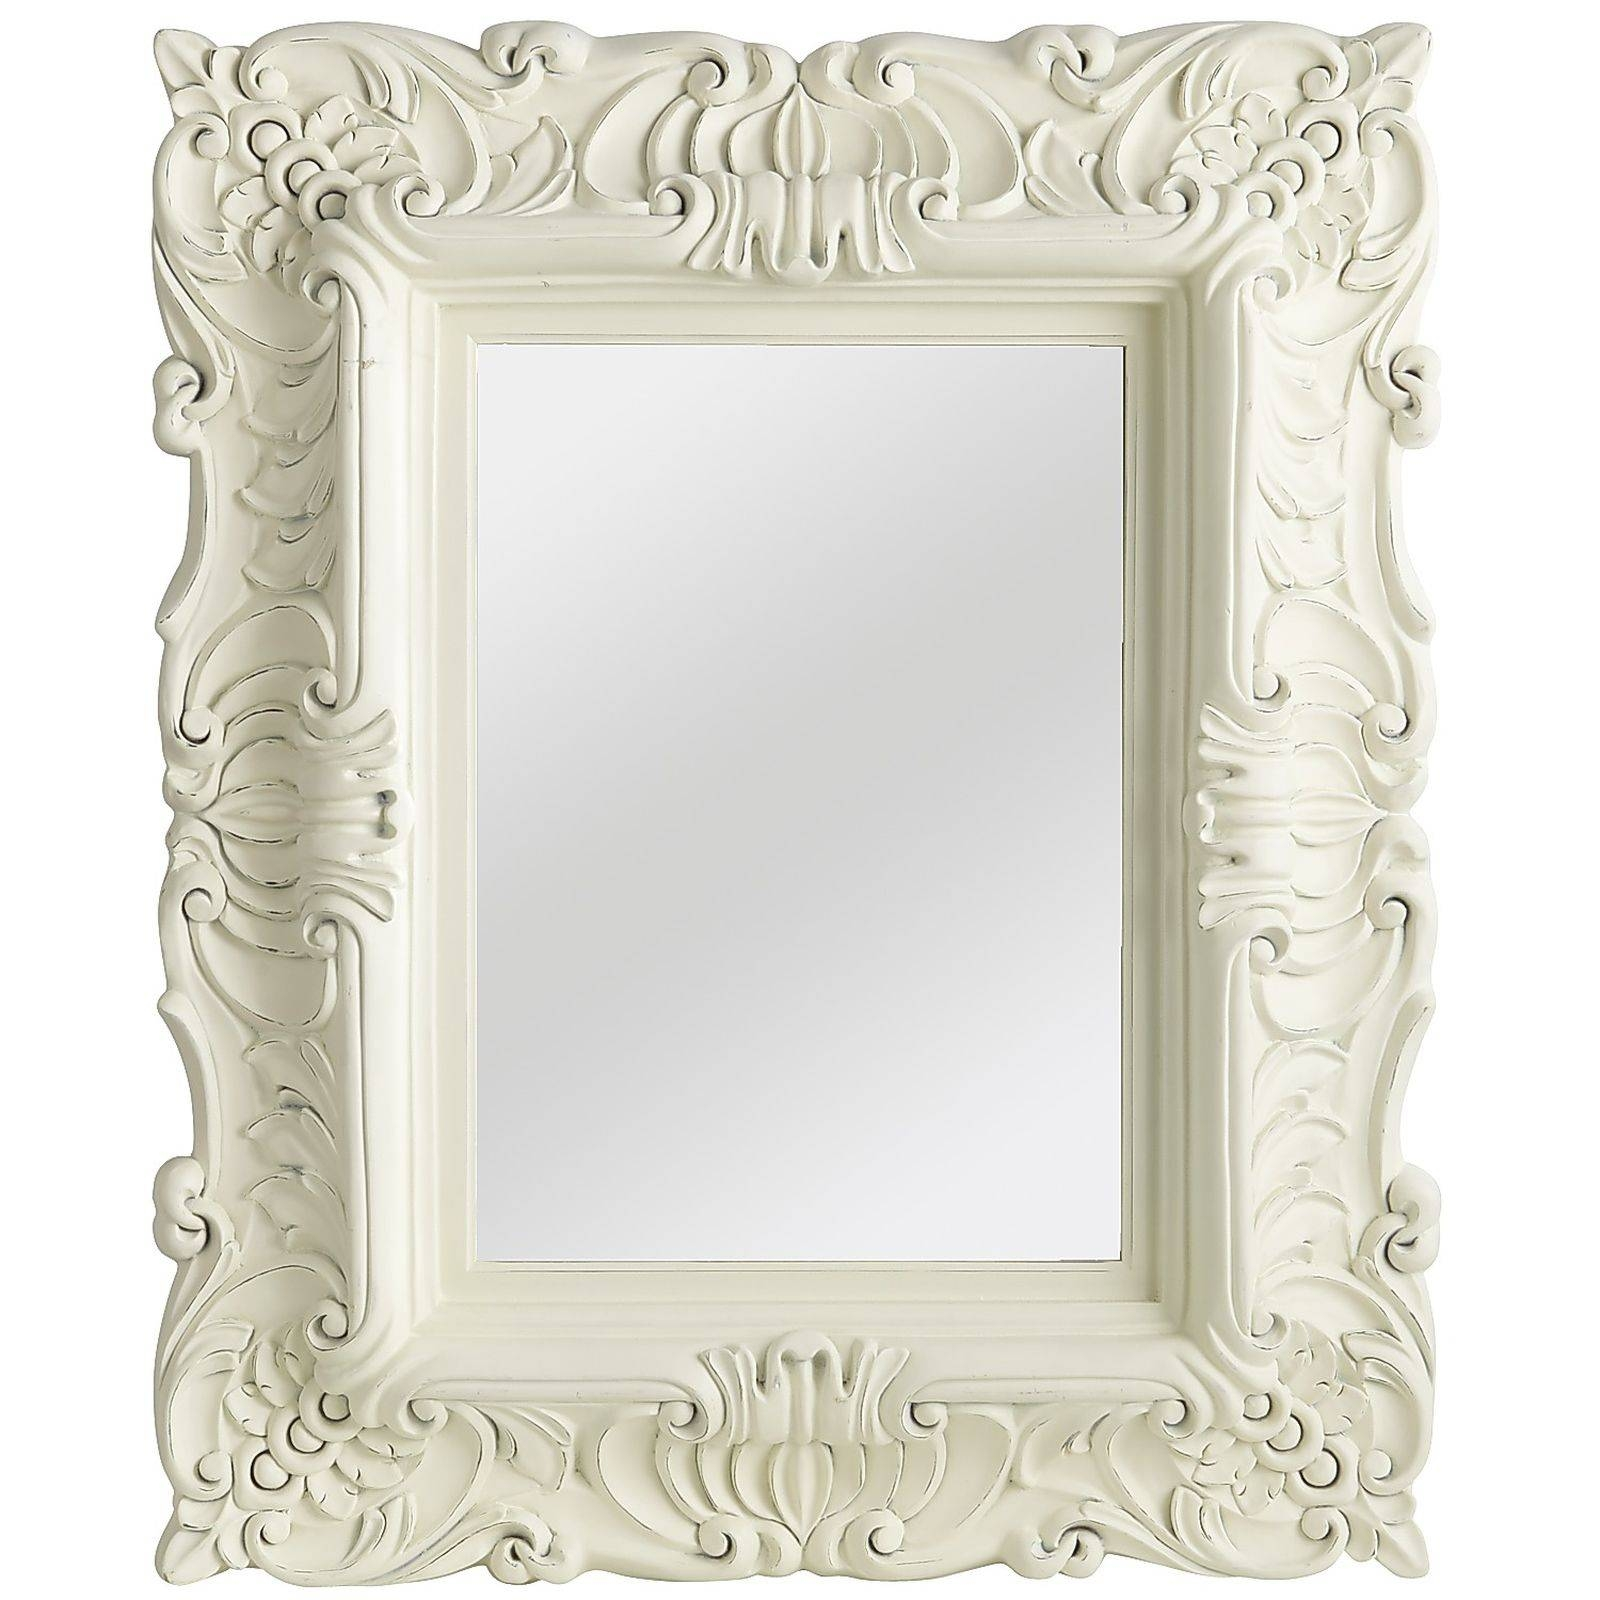 Bathroom: Astounding Baroque Mirror With Unique Frame For Bathroom in White Baroque Wall Mirrors (Image 2 of 25)